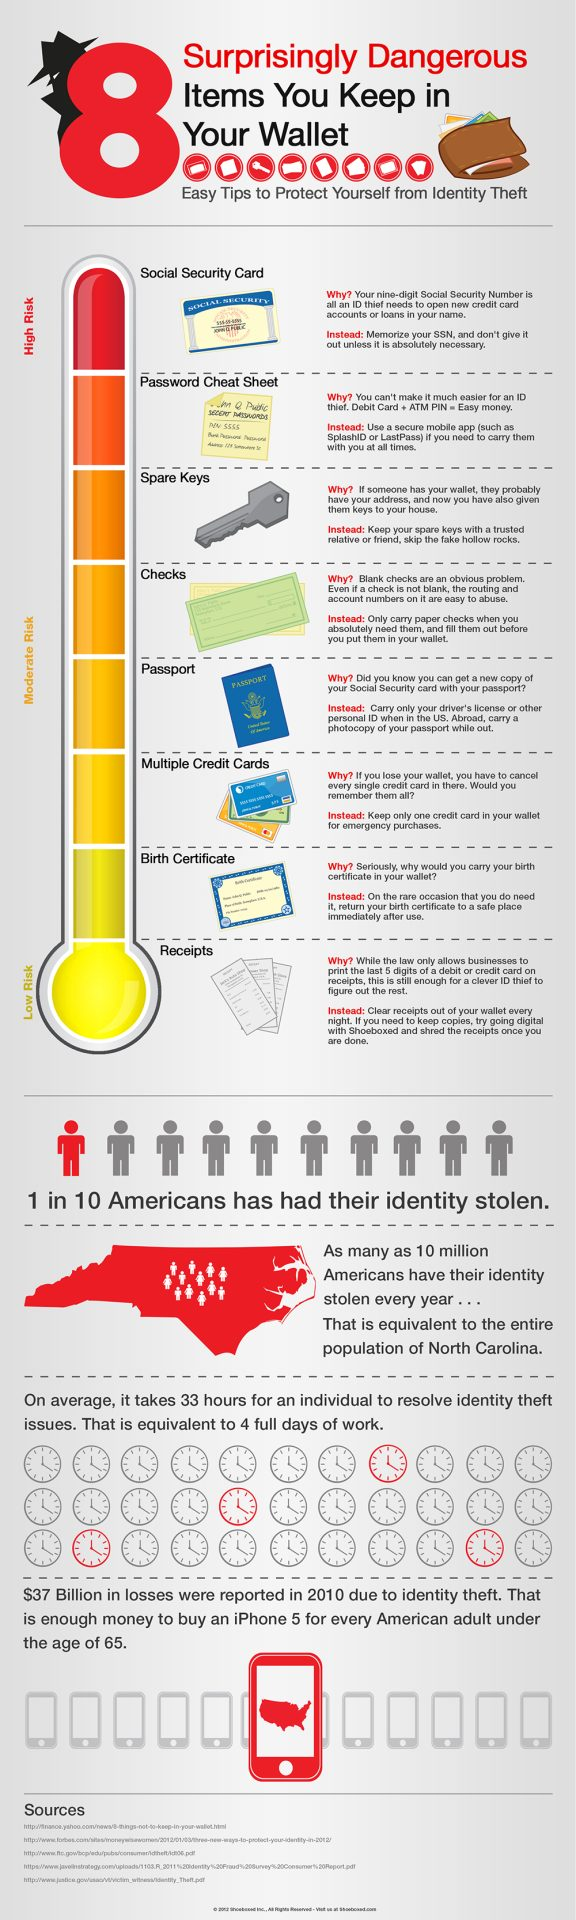 Easy Tips to Protect Yourself from Identity Theft , 8 Surprisingly Dangerous Items You Keep in Your Wallet